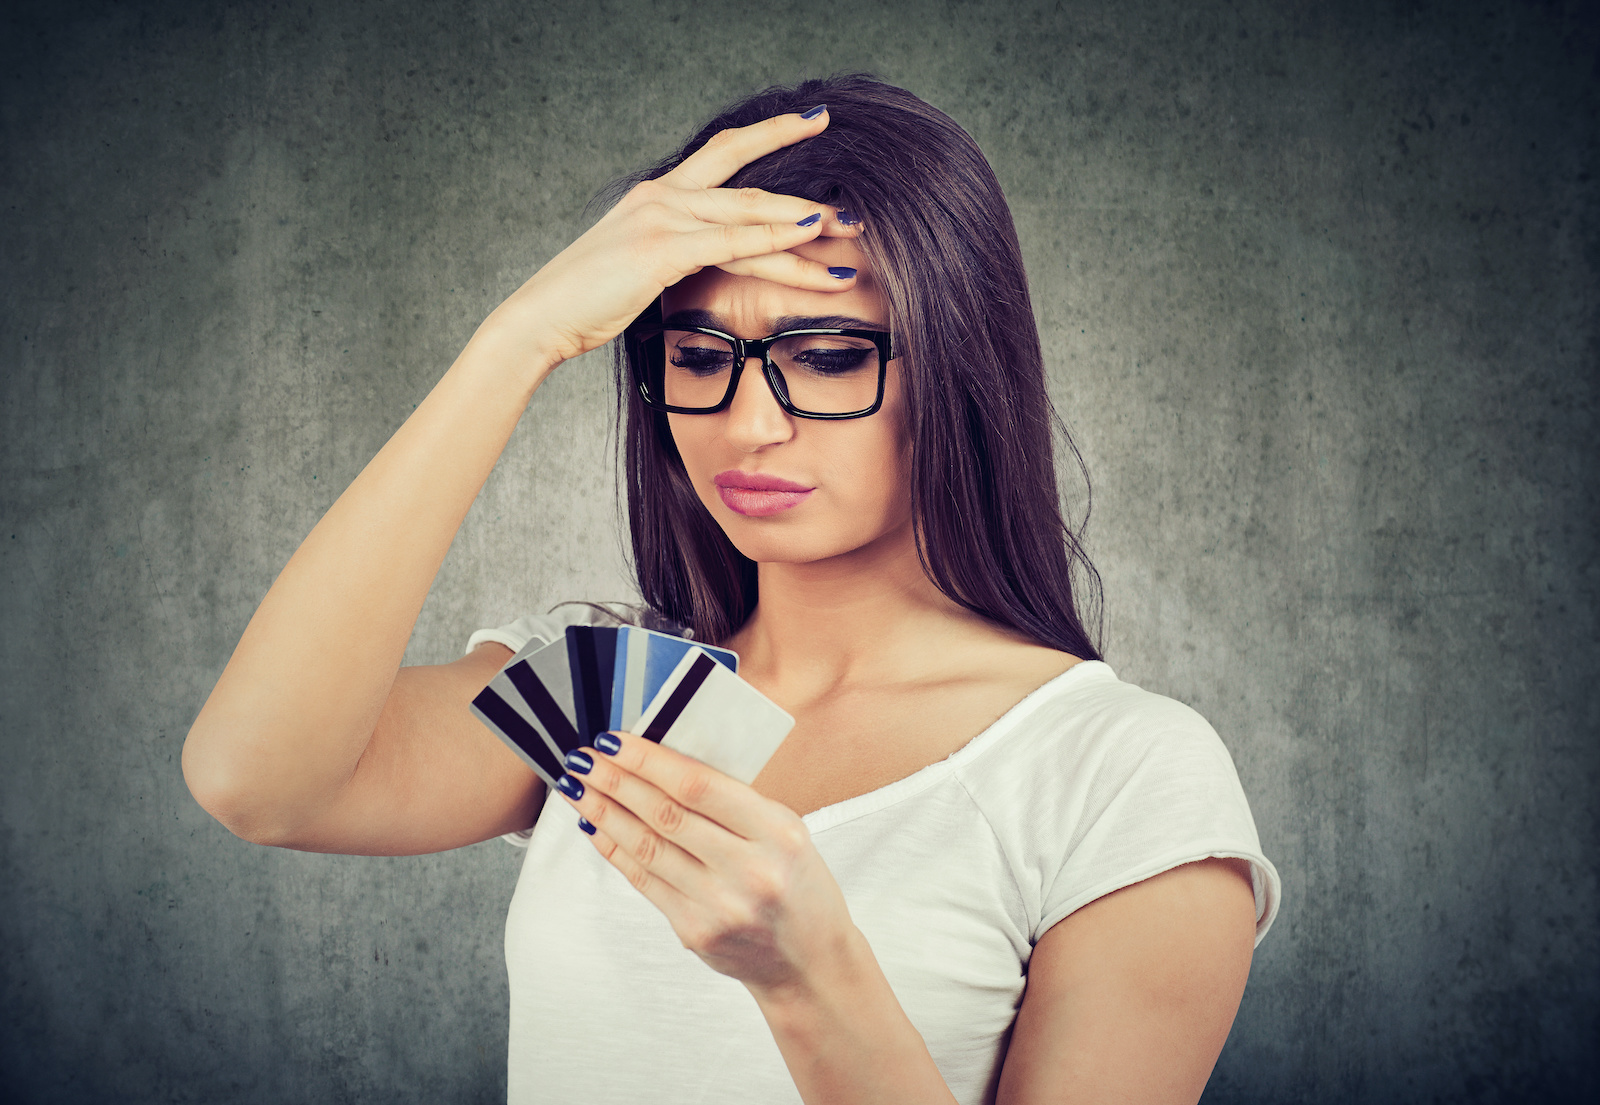 Best debt relief: Stressed woman holding multiple credit cards